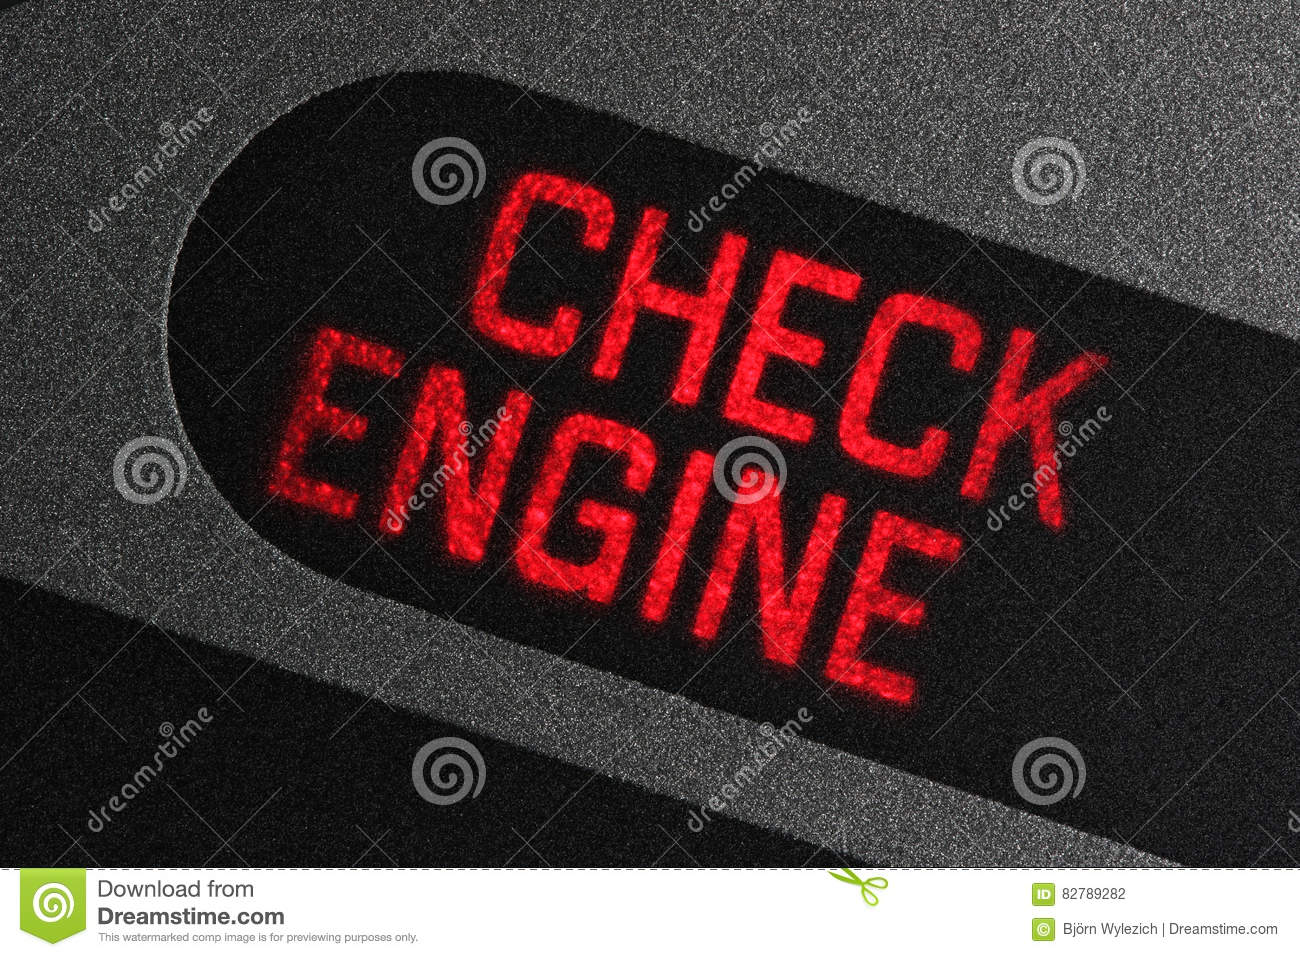 e4bc5dc3f0b Check engine warning light stock photo. Image of mobility - 82789282